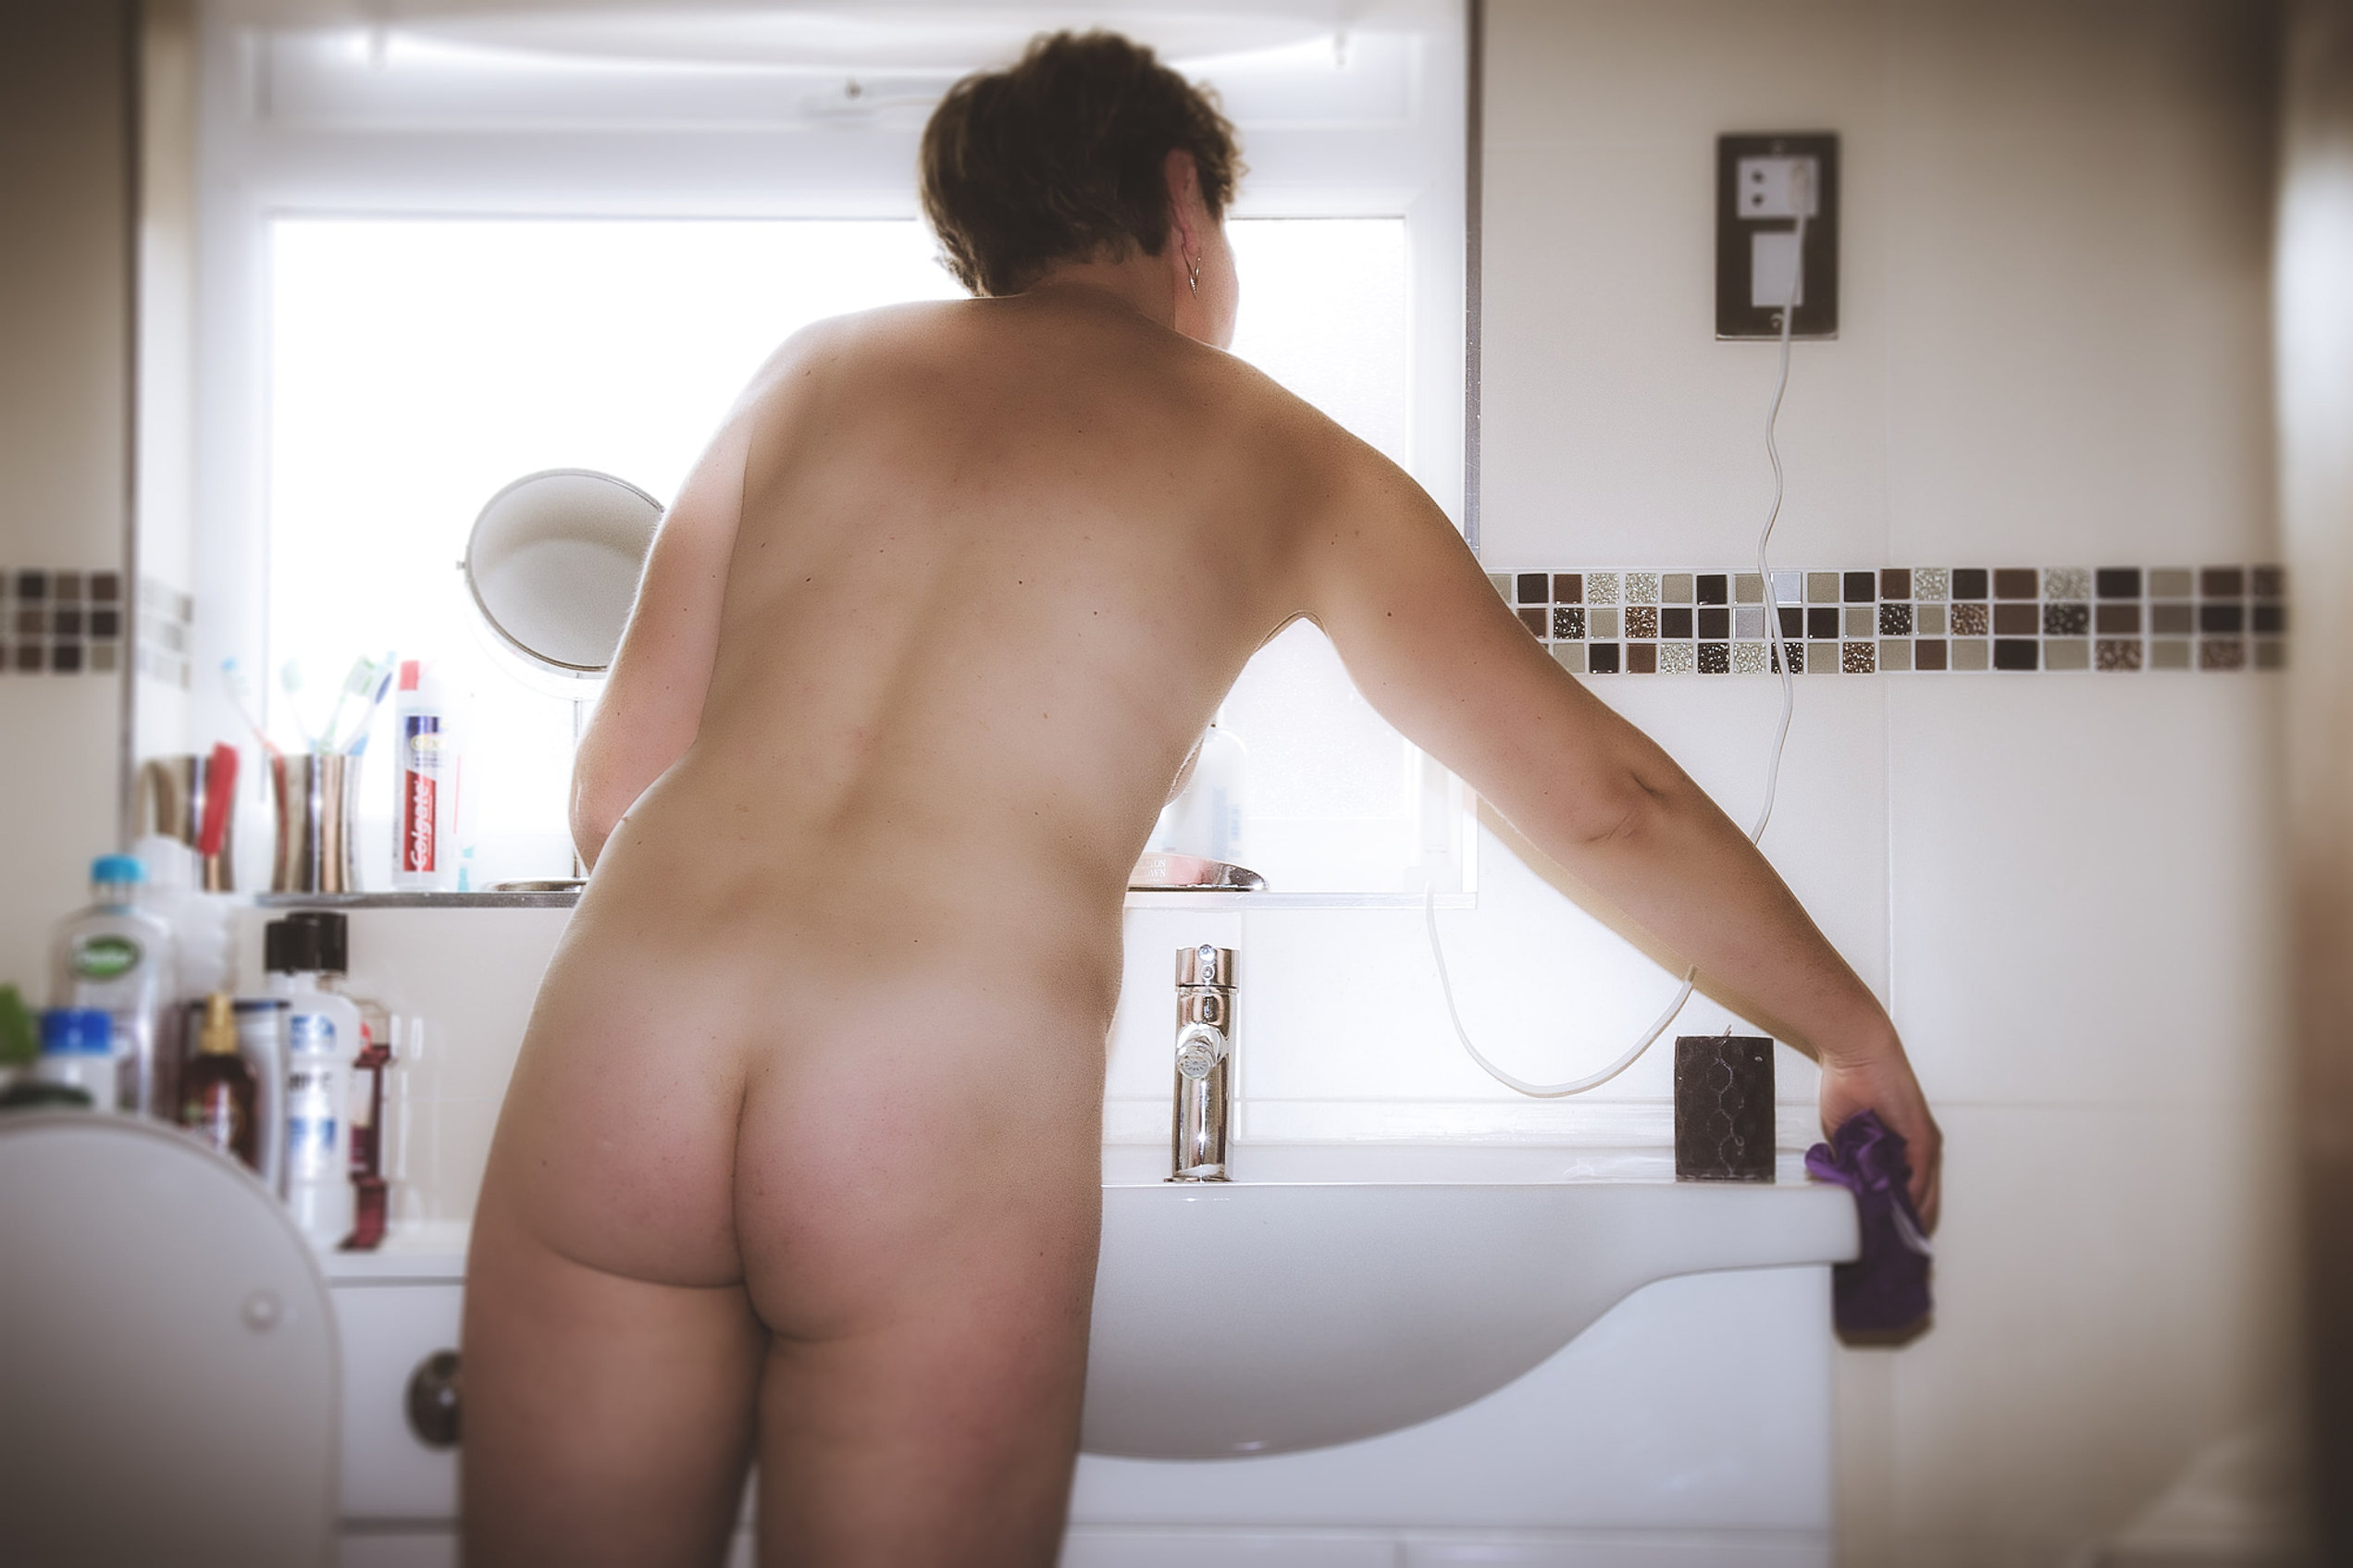 Nude house cleaning in virginia